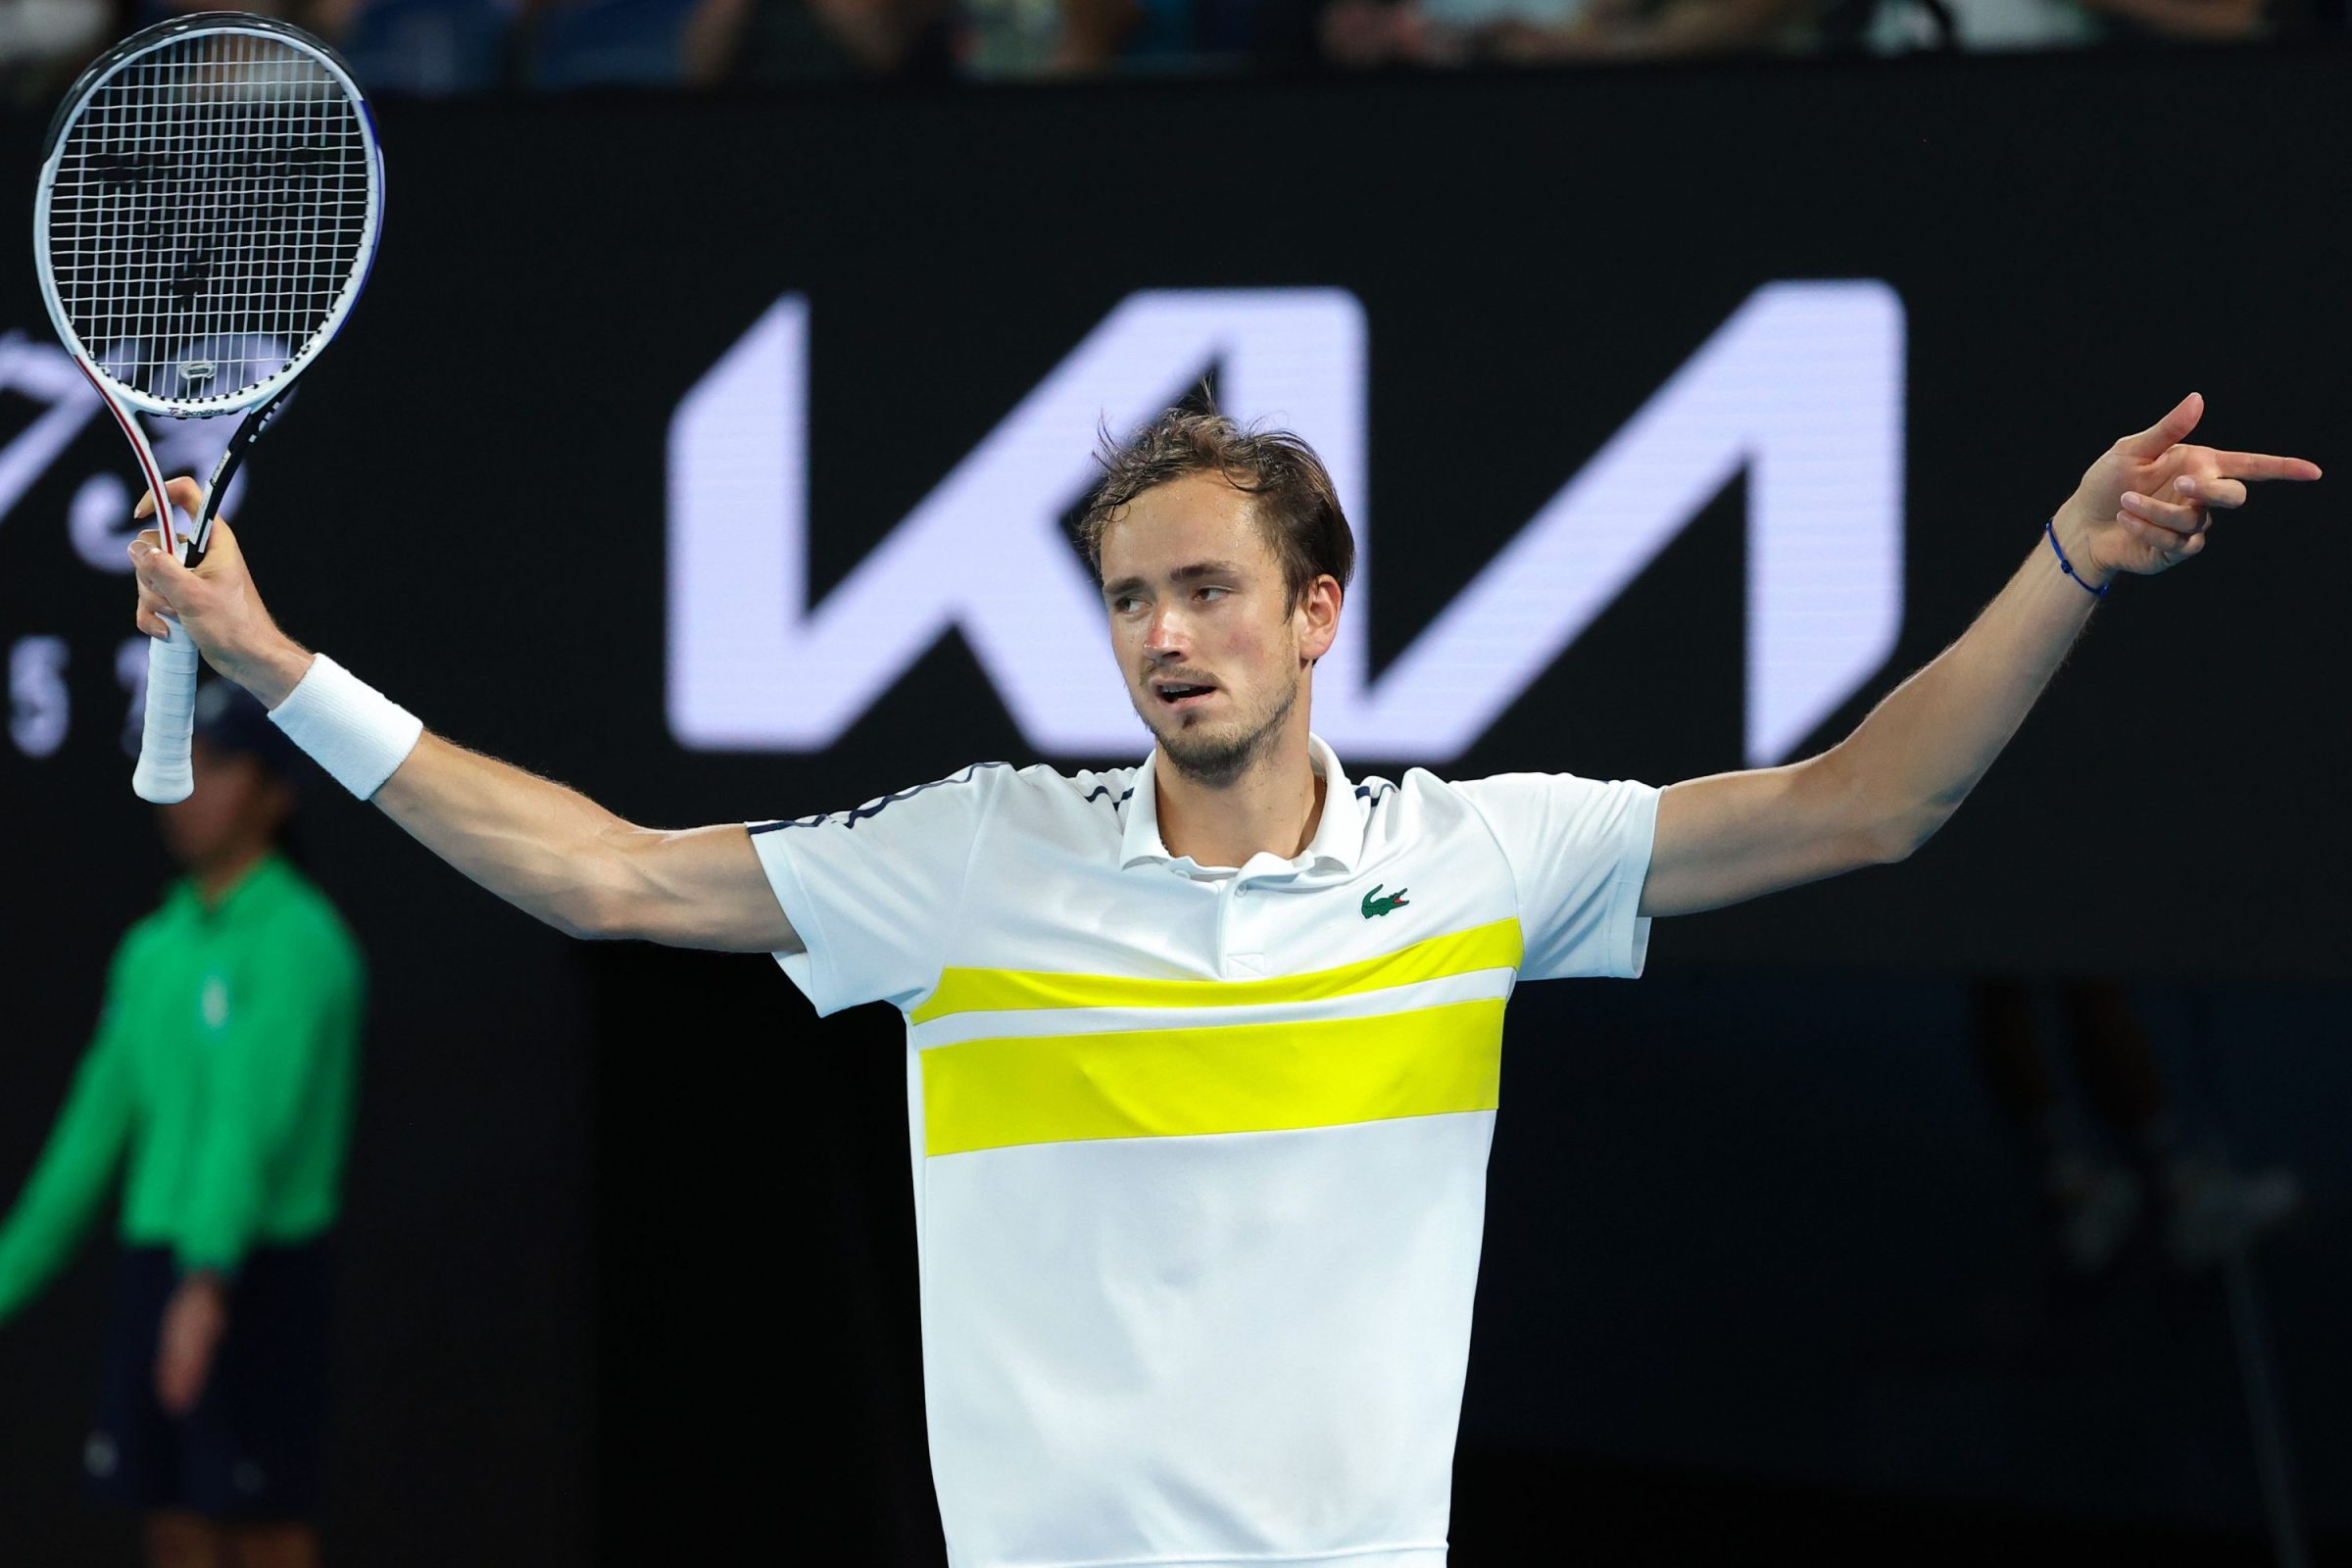 Russia's Daniil Medvedev reacts as he plays against Greece's Stefanos Tsitsipas during their men's singles semi-final match on day twelve of the Australian Open tennis tournament in Melbourne on February 19, 2021.